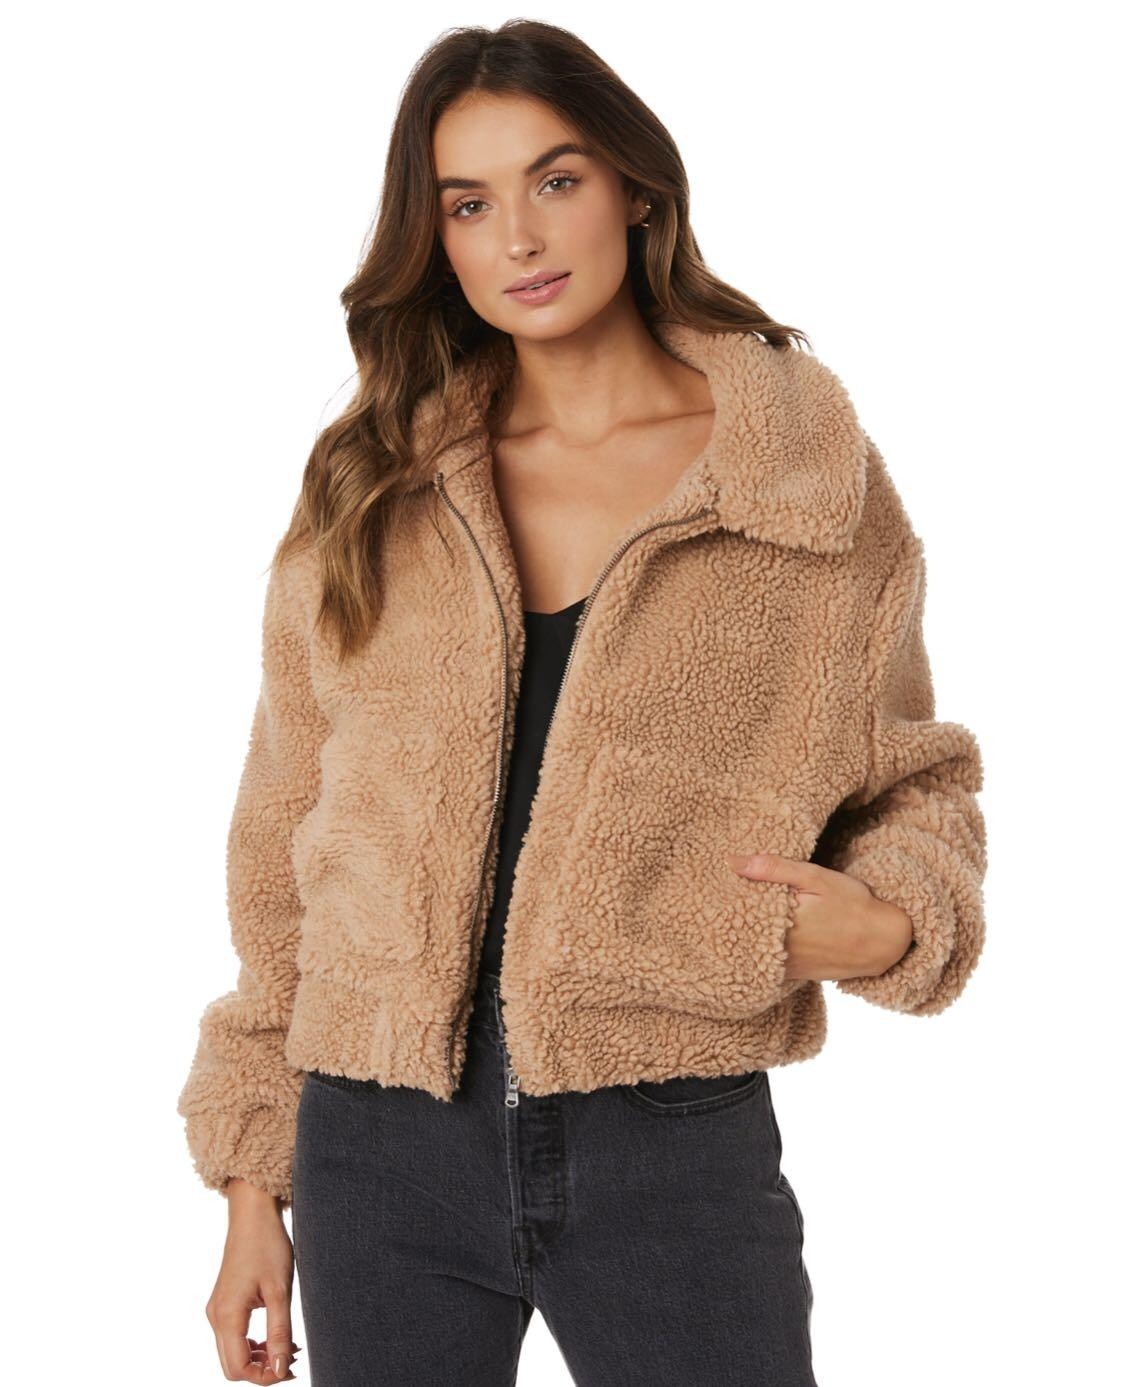 Like New! All About Eve Carey Teddy Beige Brown Cropped Short Jacket Coat XS 6